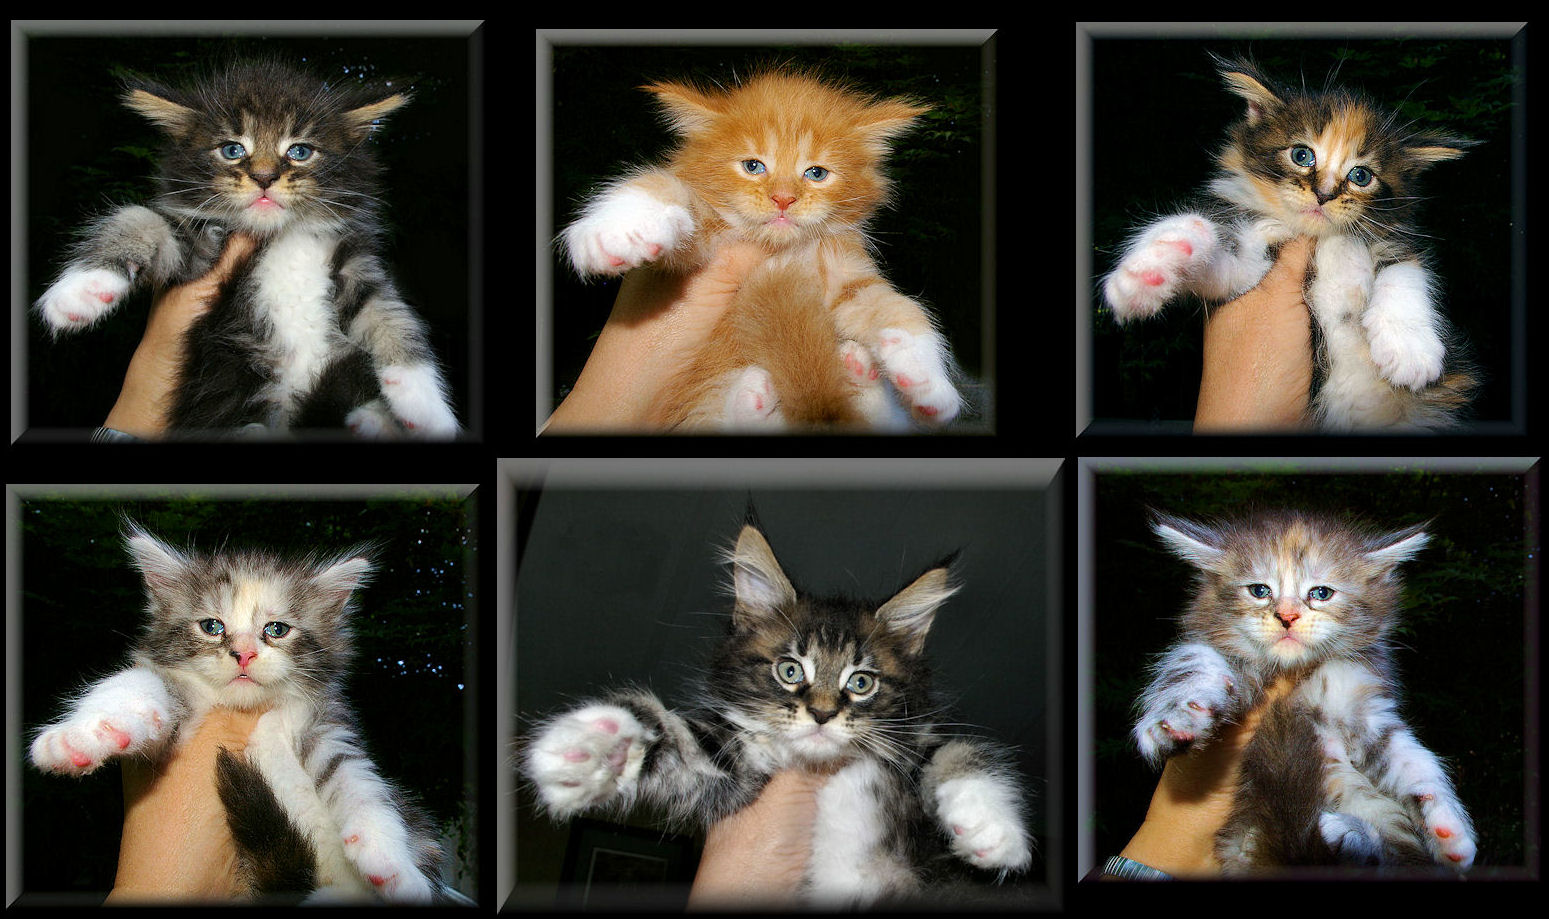 Wel e to our Gallery of Maine Coon Kitens